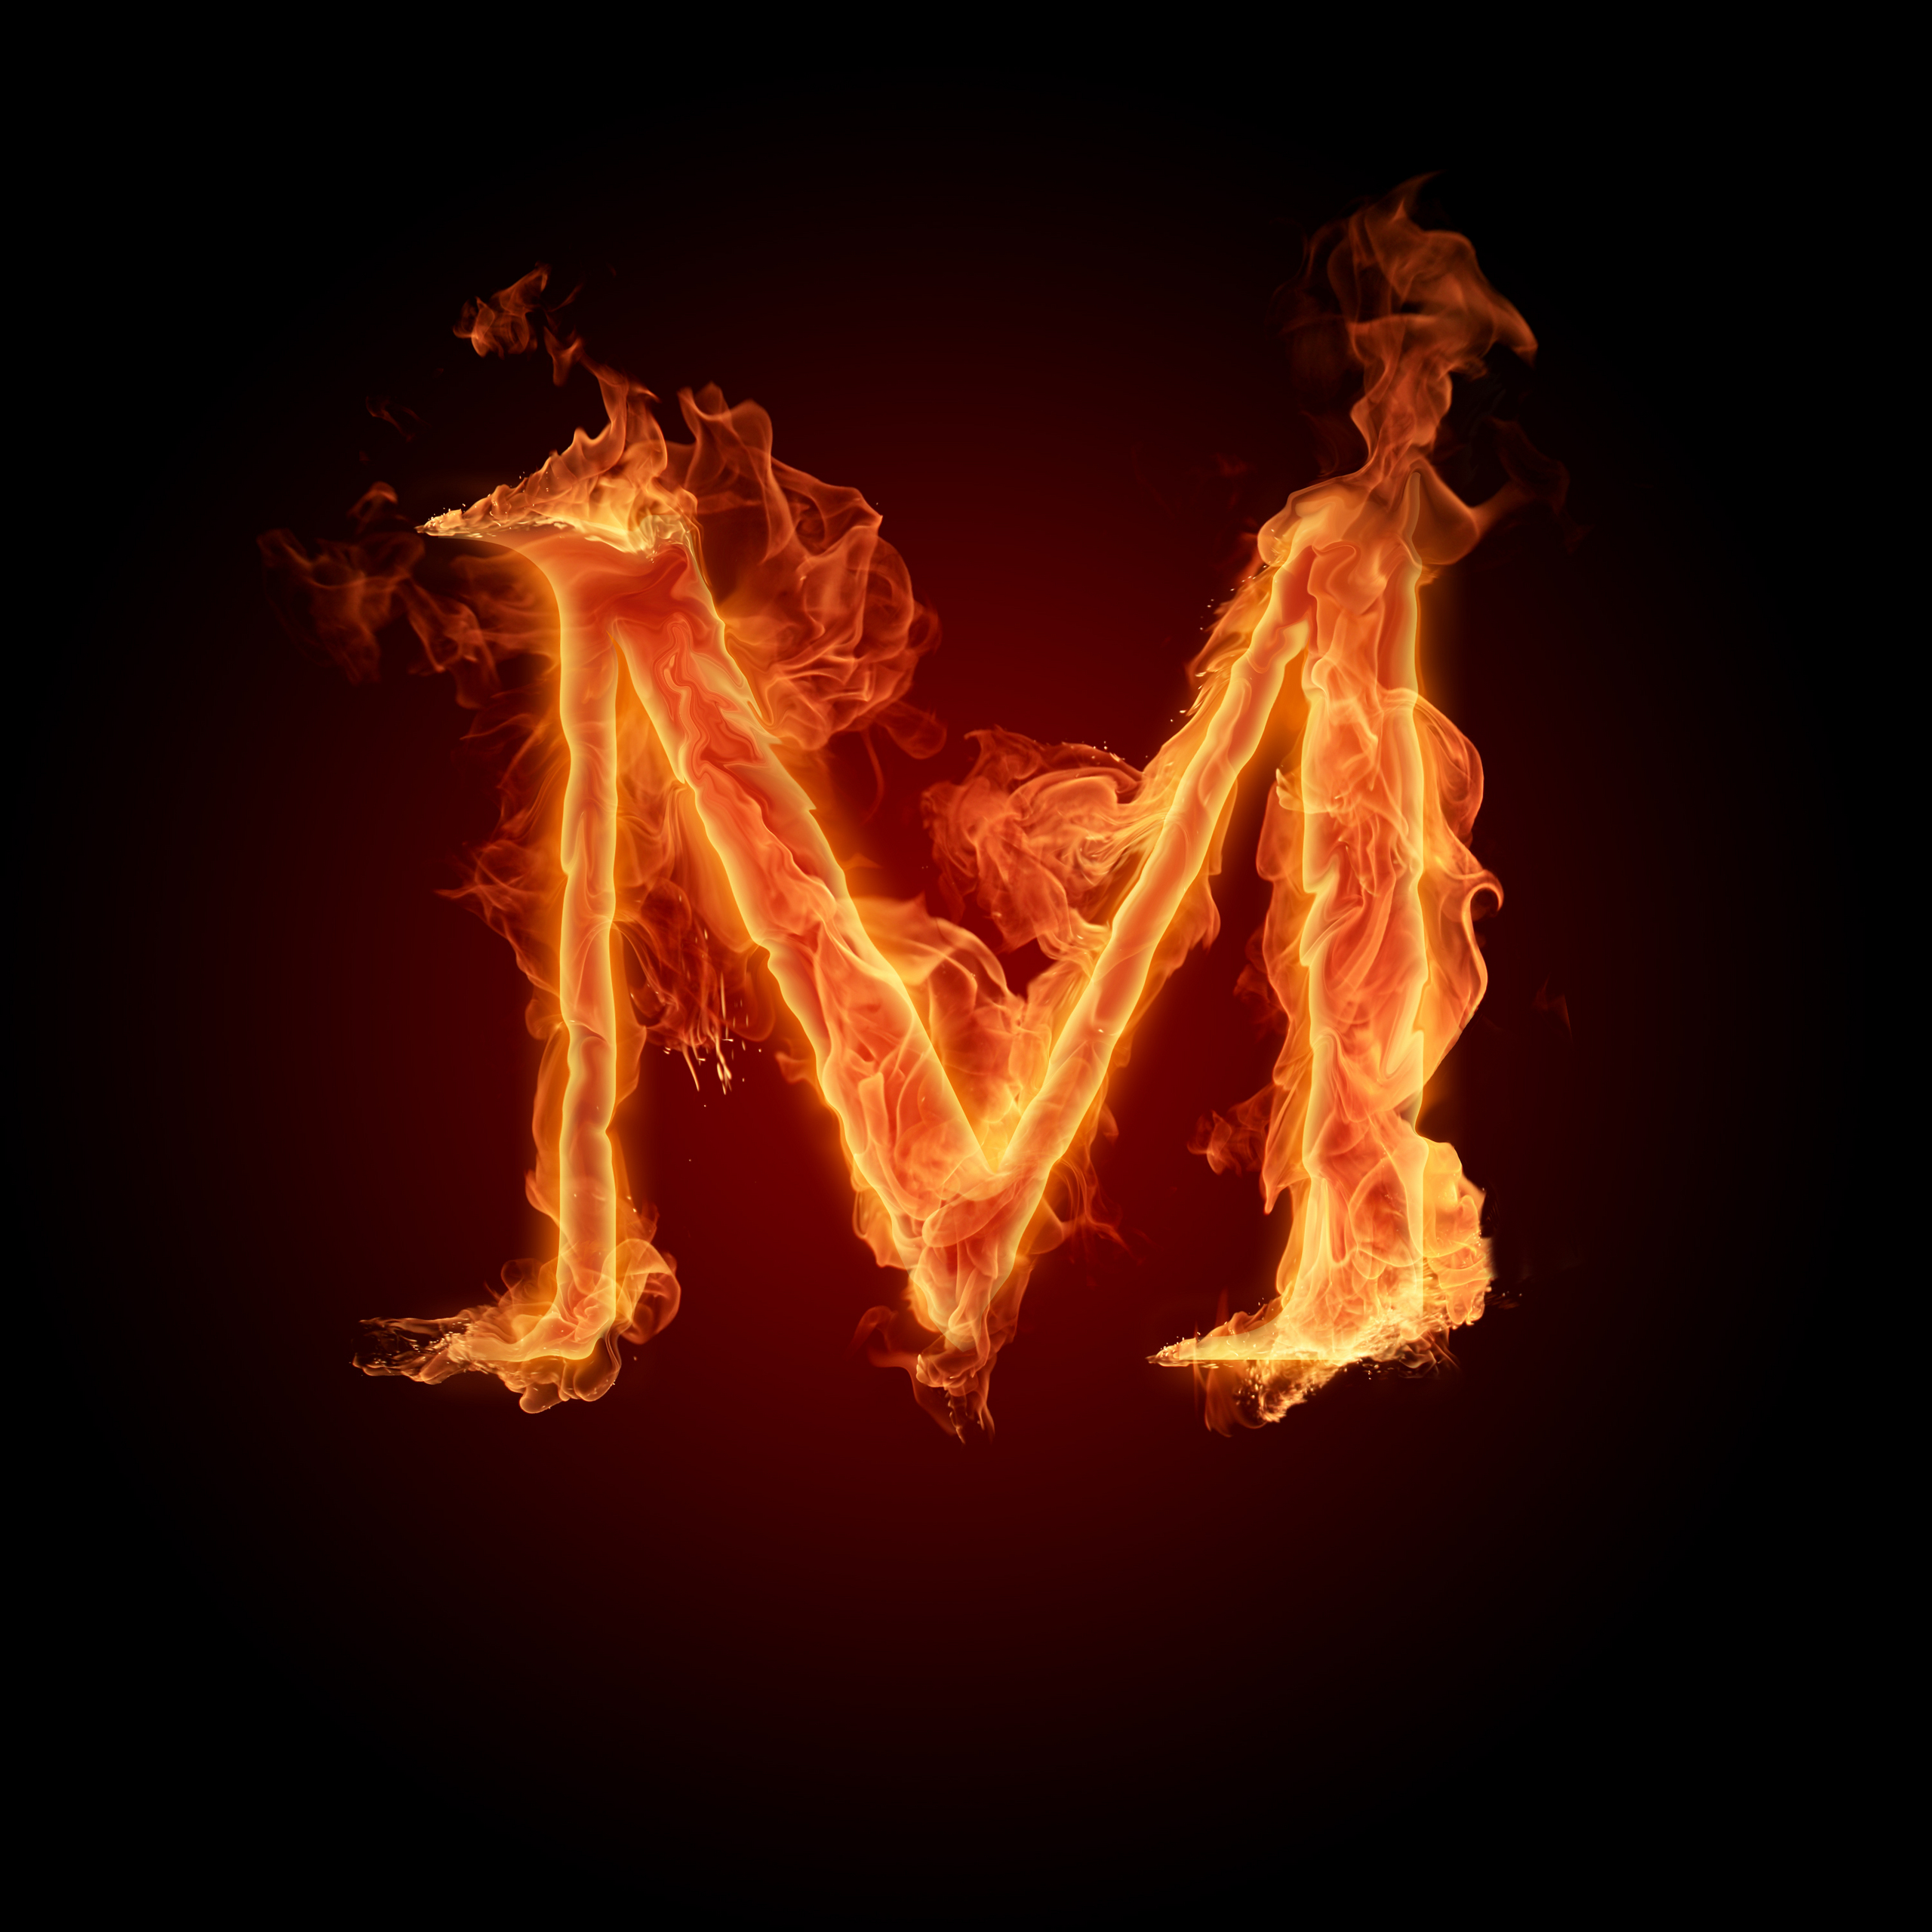 Exceptional The Letter M Images The Letter M HD Wallpaper And Background Photos